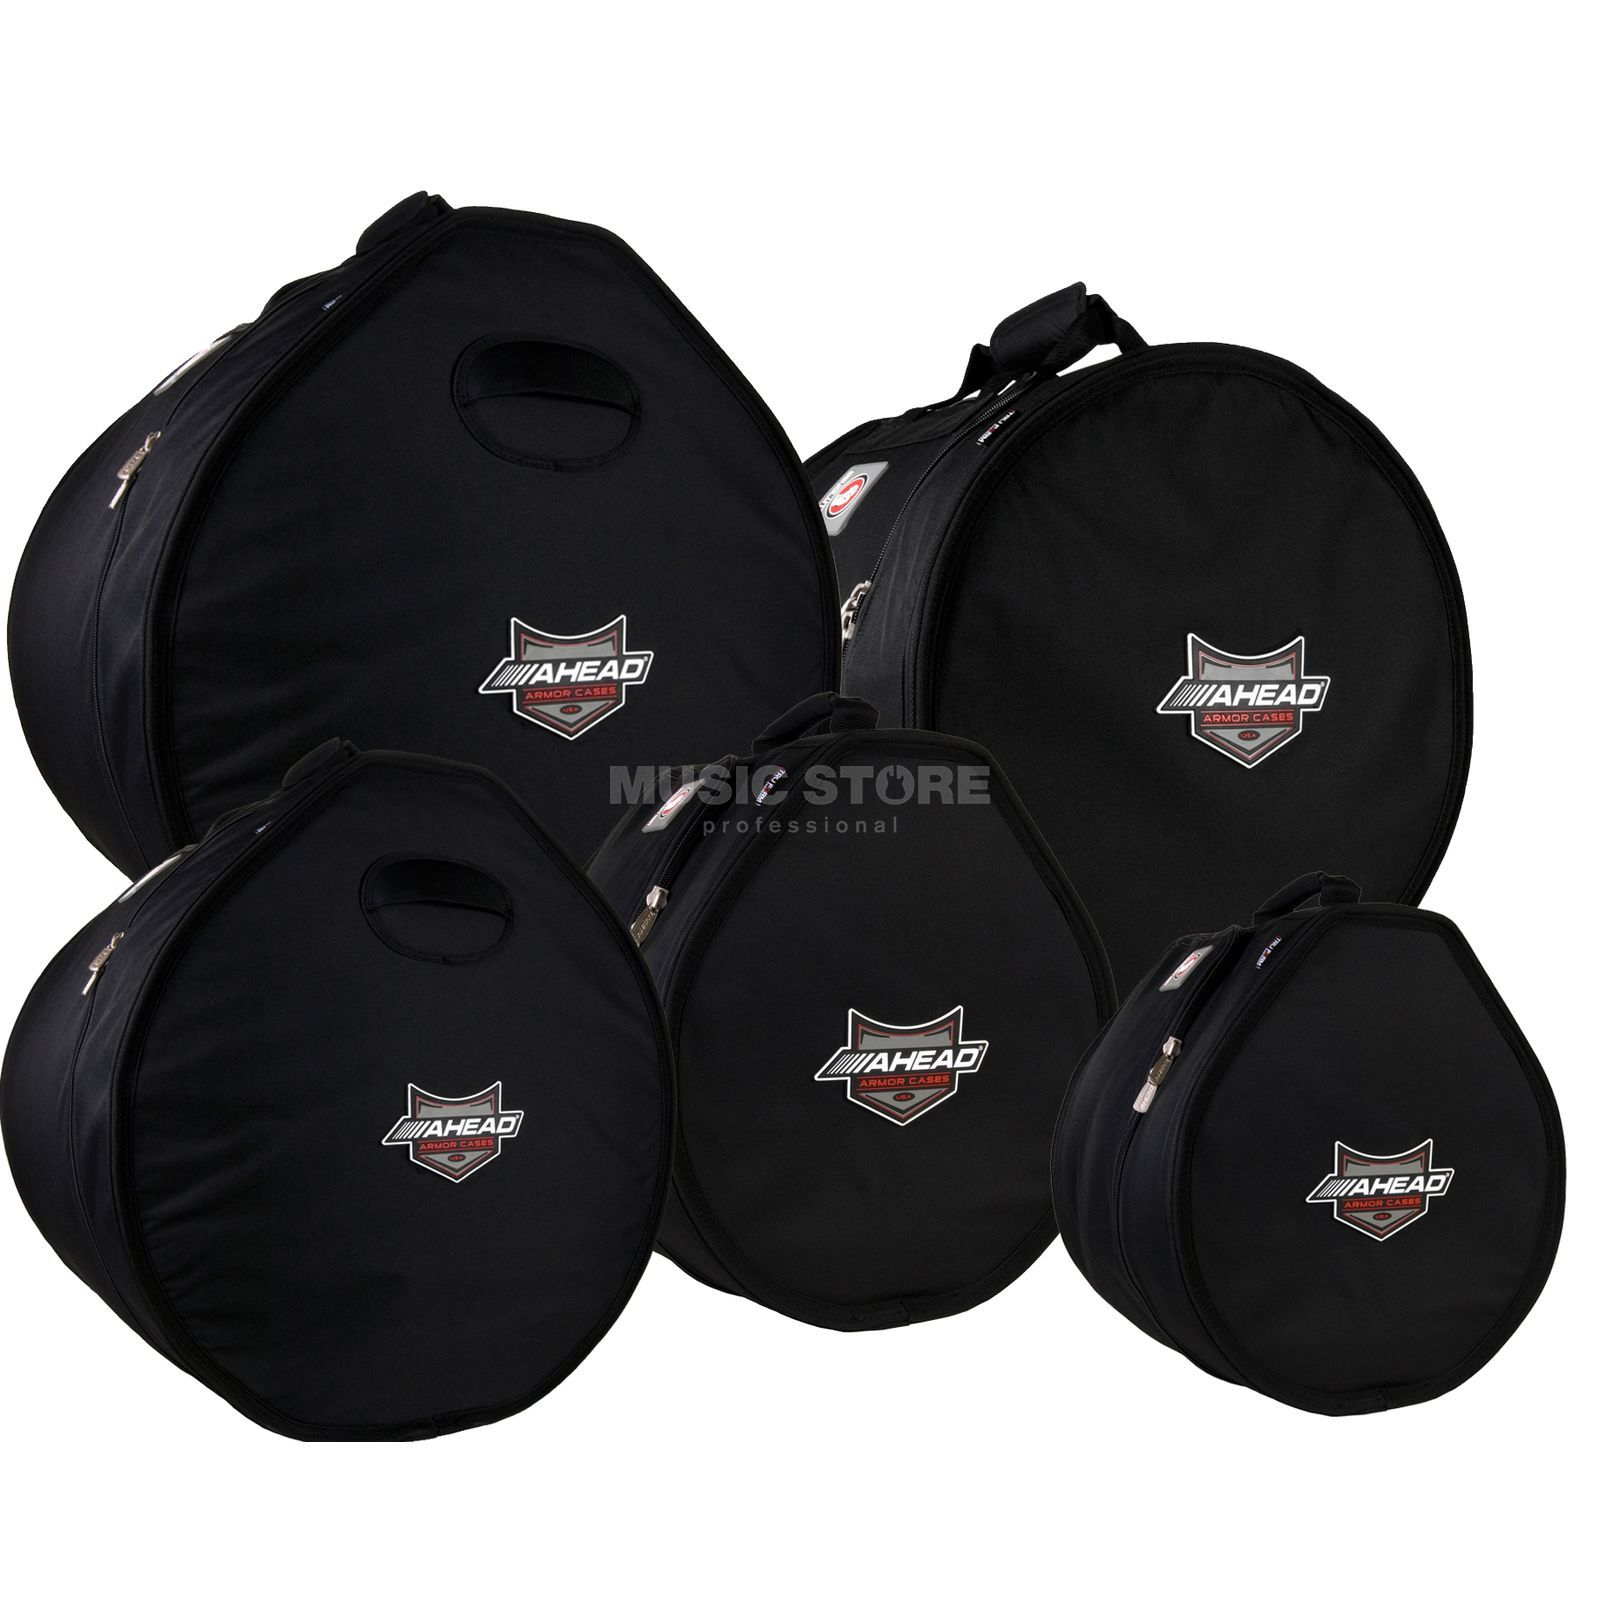 Ahead Armor Cases Drum Bag Set 5, ARSET-5, 22, 10, 12, 14, 16 Produktbild